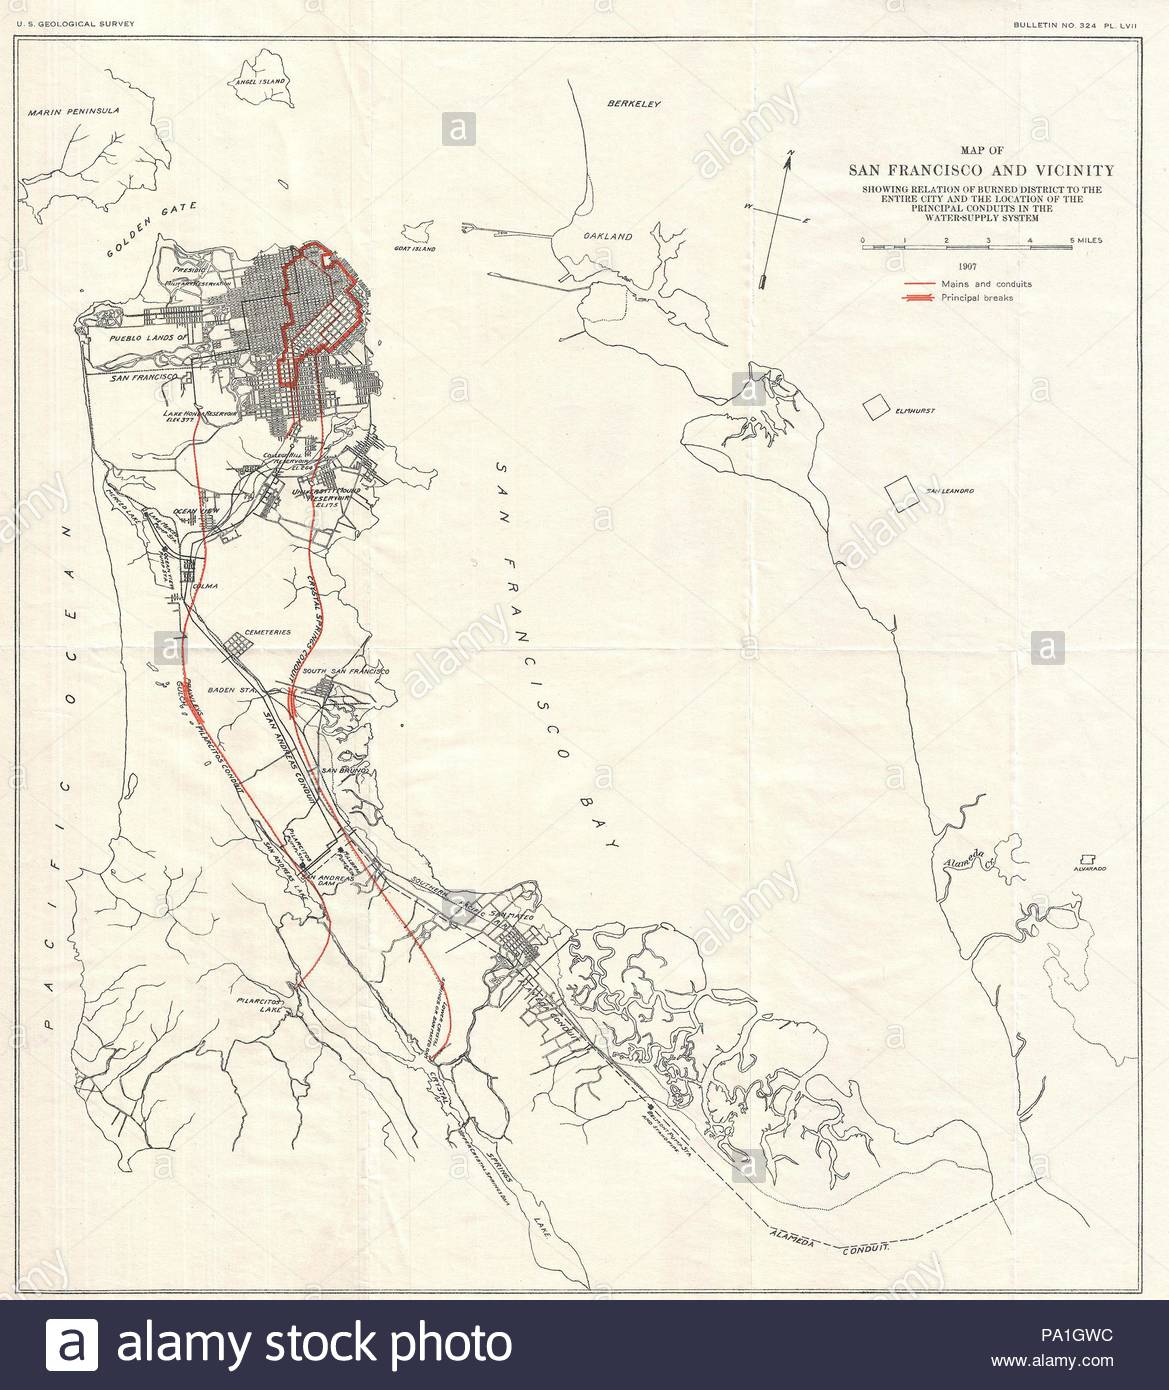 1906 Earthquake Map.1907 Geological Survey Map Of San Francisco Peninsula After 1906